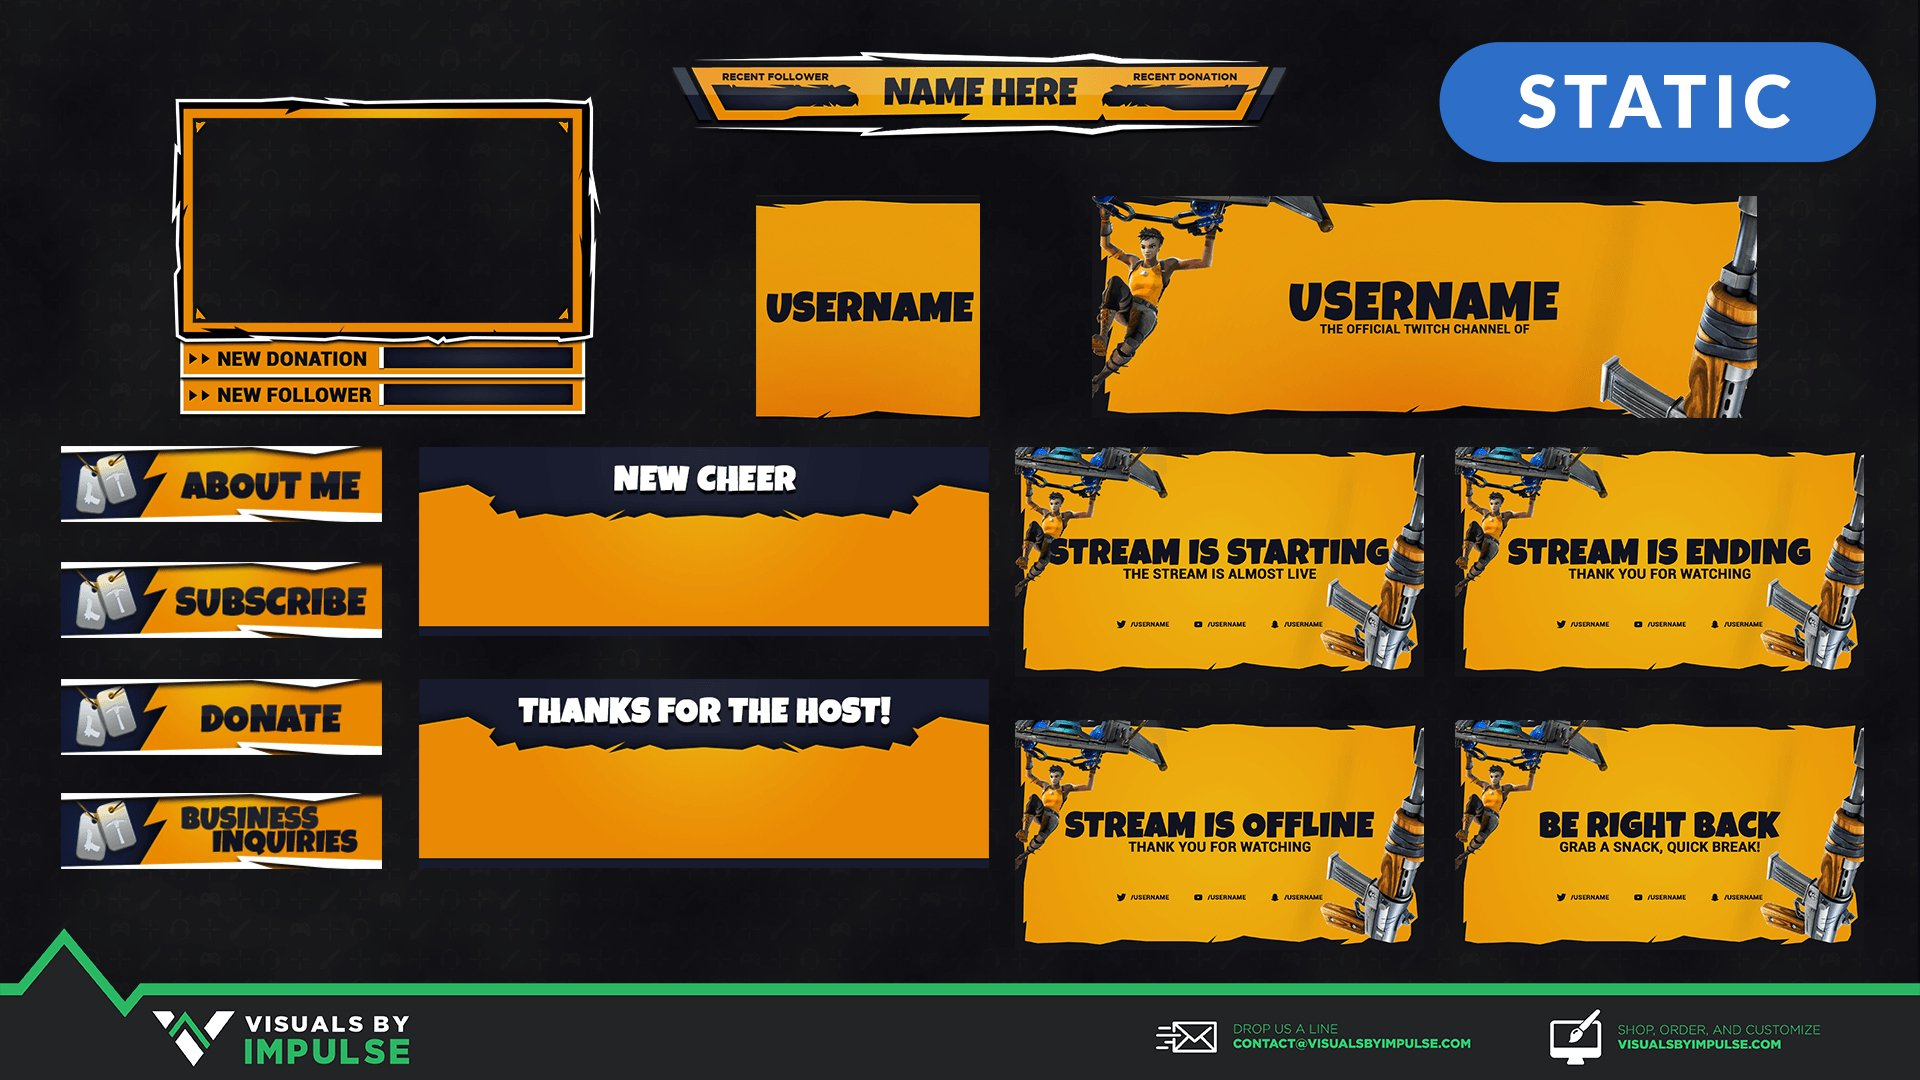 Fortnite Stream Package - Visuals by Impulse